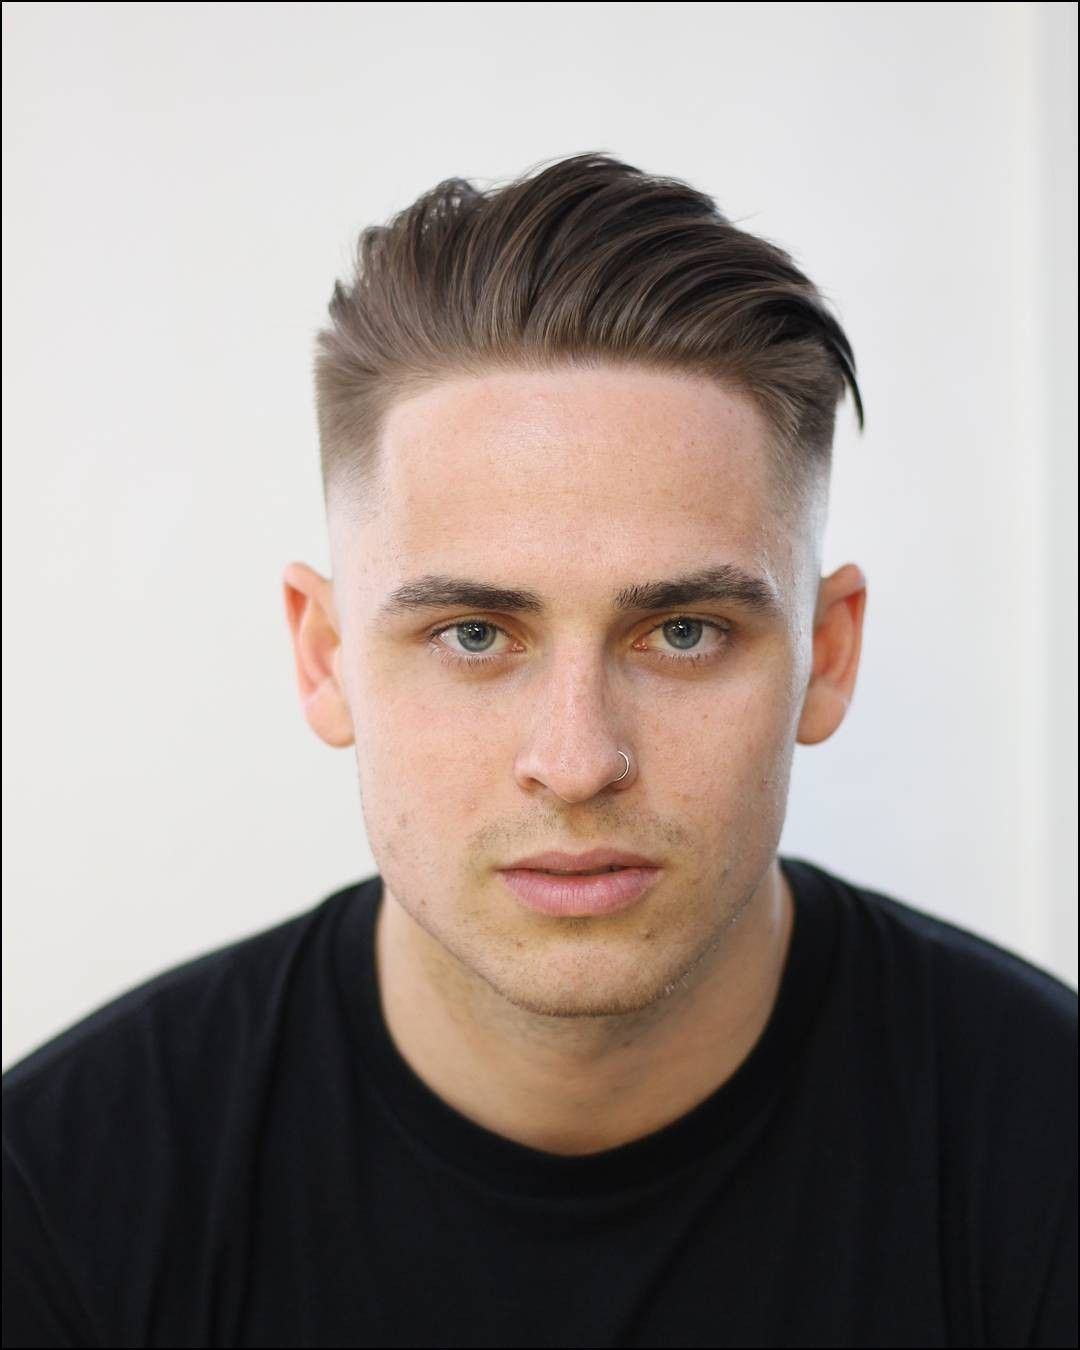 Medium haircut for men best haircuts for straight hair men  hairstyle inspiration